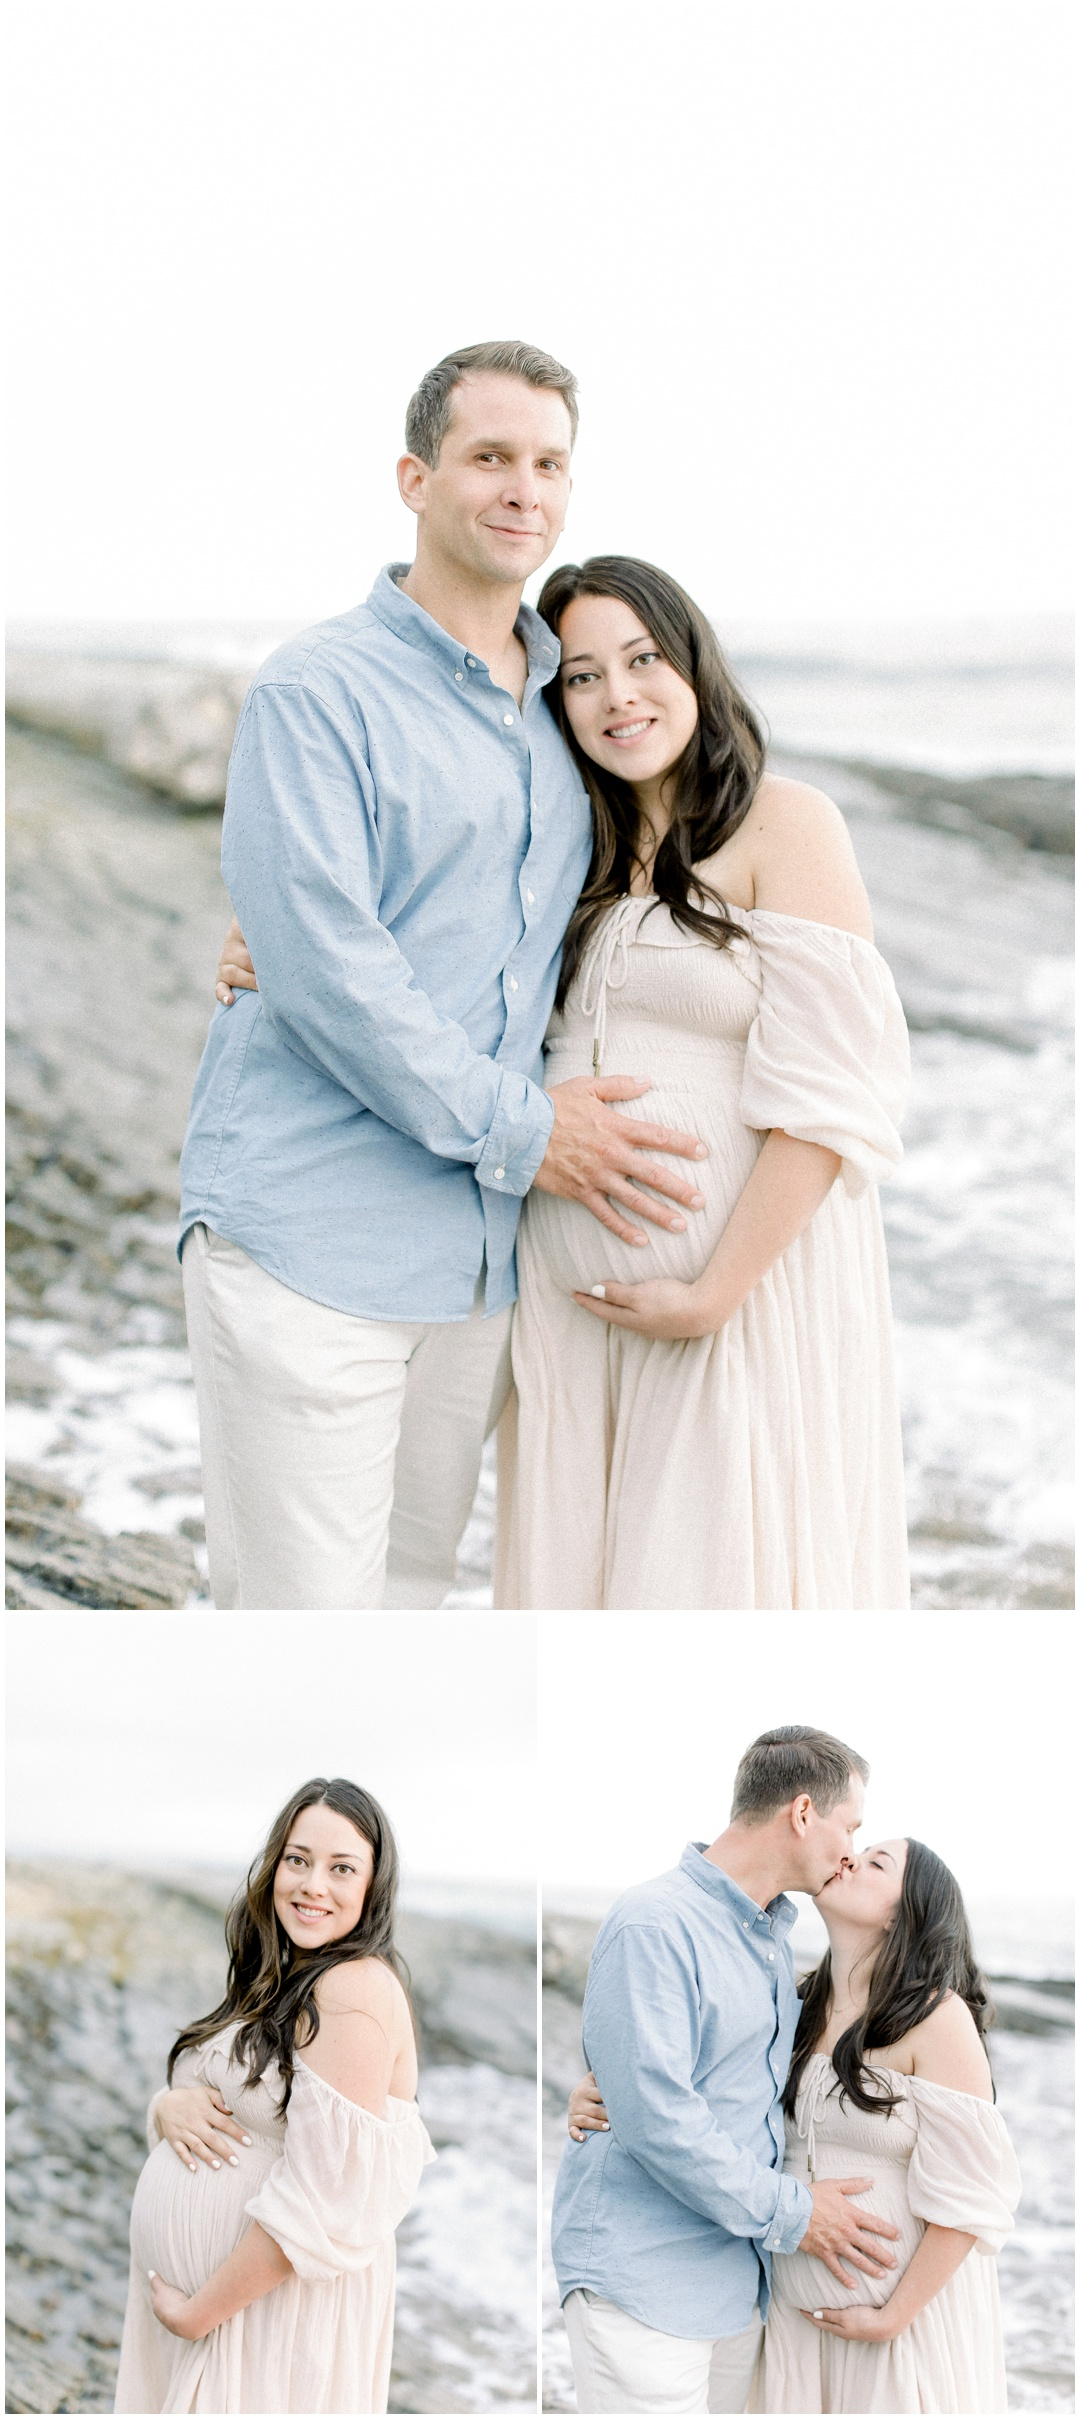 Newport_Beach_Newborn_Light_Airy_Natural_Photographer_Newport_Beach_Photographer_Orange_County_Maternity_Photographer_Cori_Kleckner_Photography_Newport_Beach_Photographer_Candice_Byle_Candice_Fillippini_Kevin_Fillippini__4165.jpg